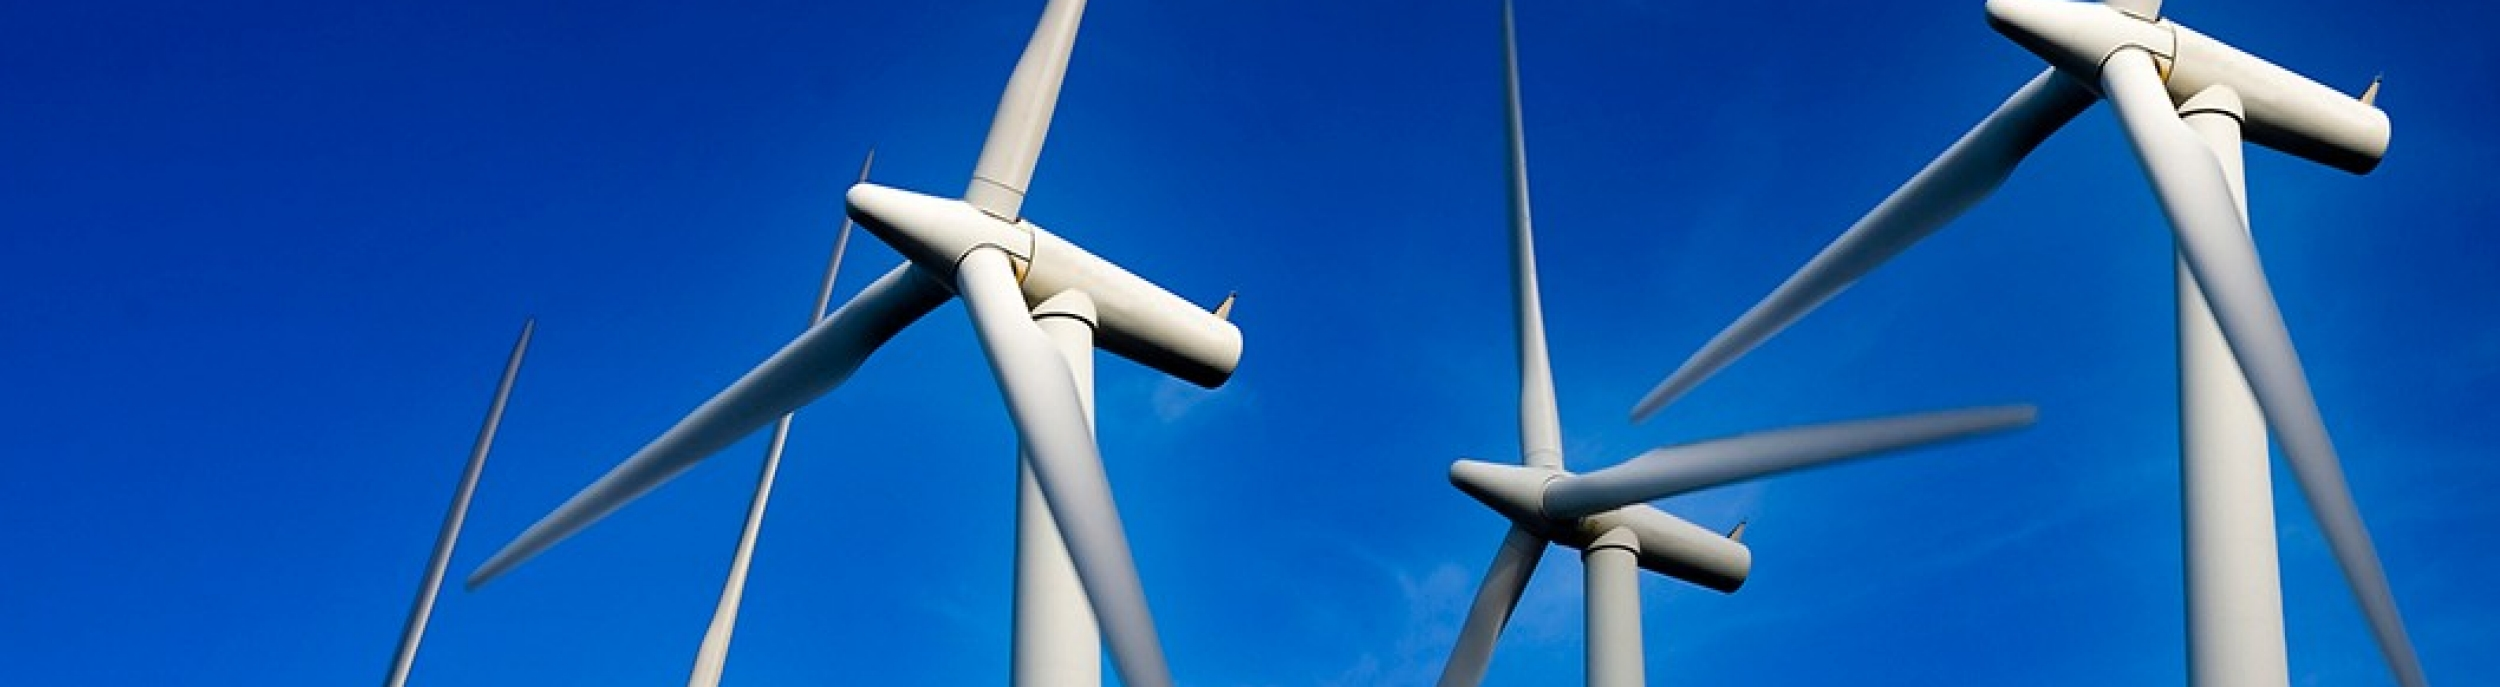 Windmills for wind power